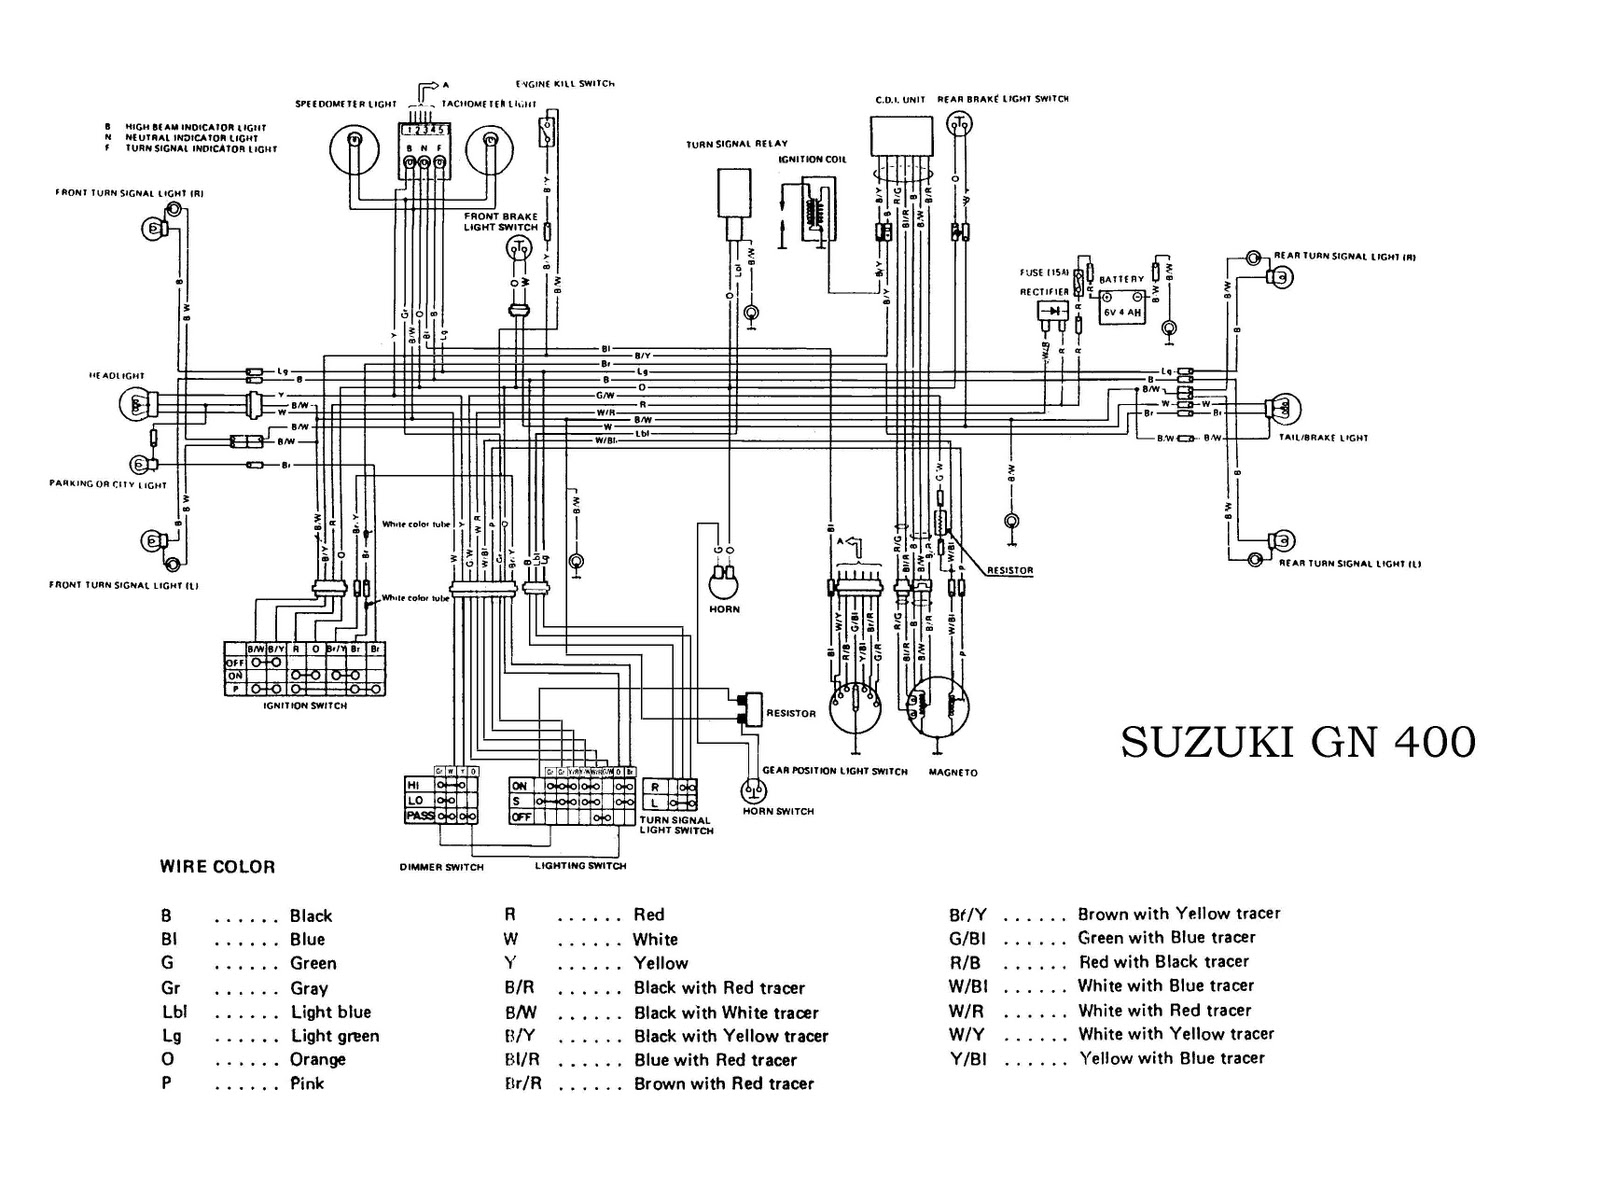 suzuki gn400 electrical wiring diagram | all about wiring diagrams, Wiring diagram